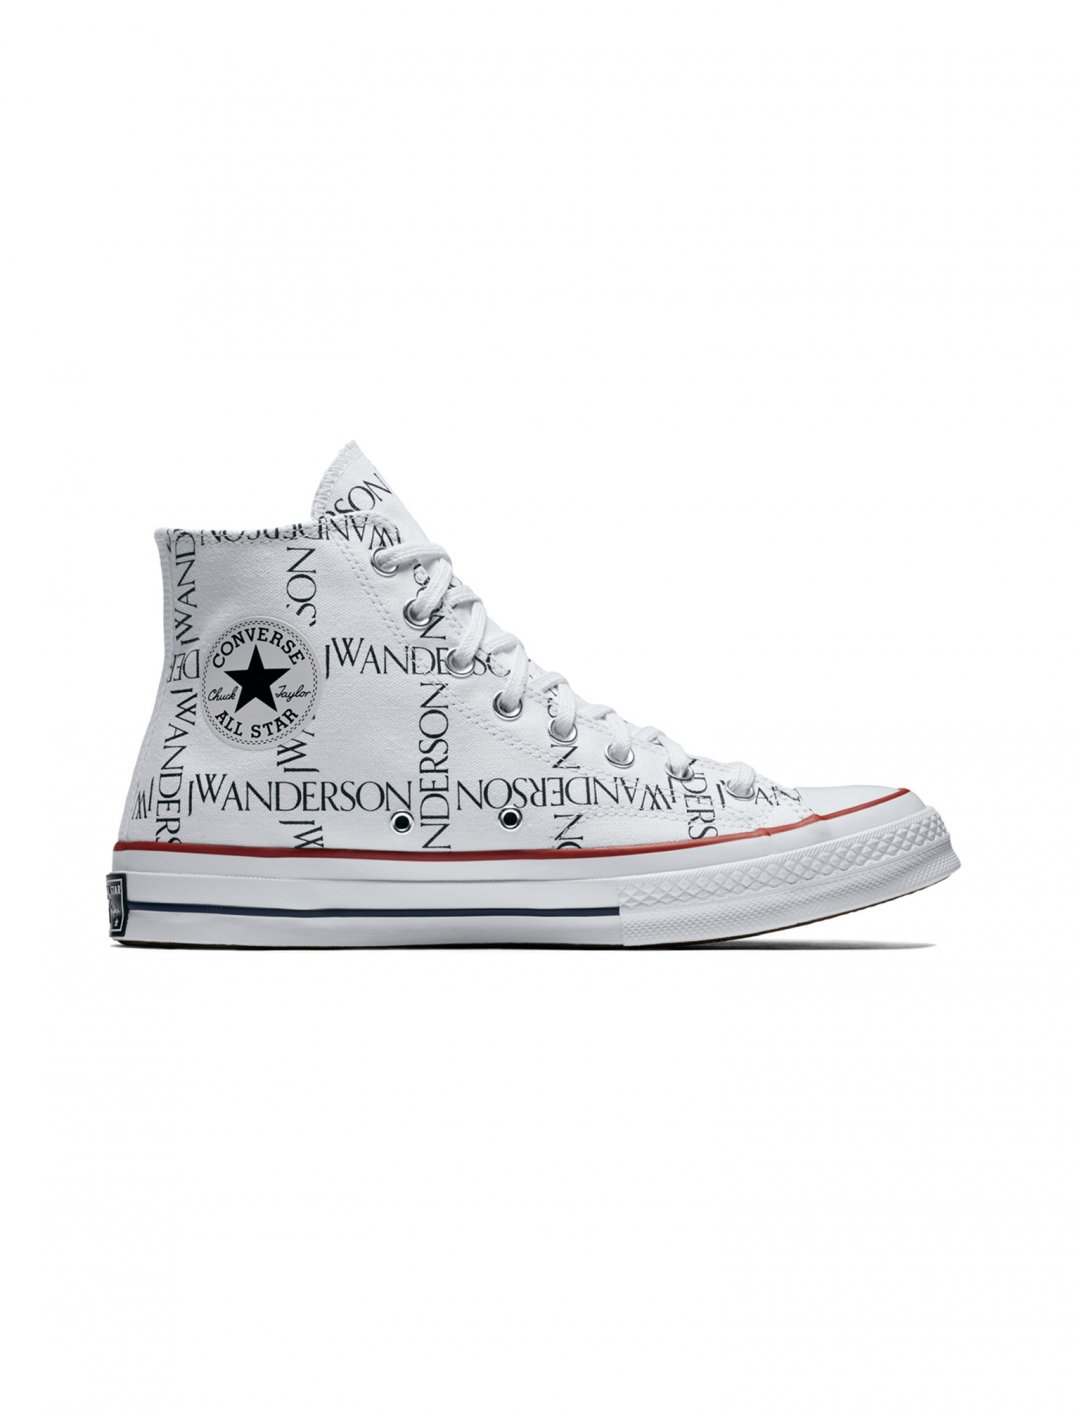 "Lil Wayne's Printed Trainers {""id"":12,""product_section_id"":1,""name"":""Shoes"",""order"":12} Converse x JW Anderson"